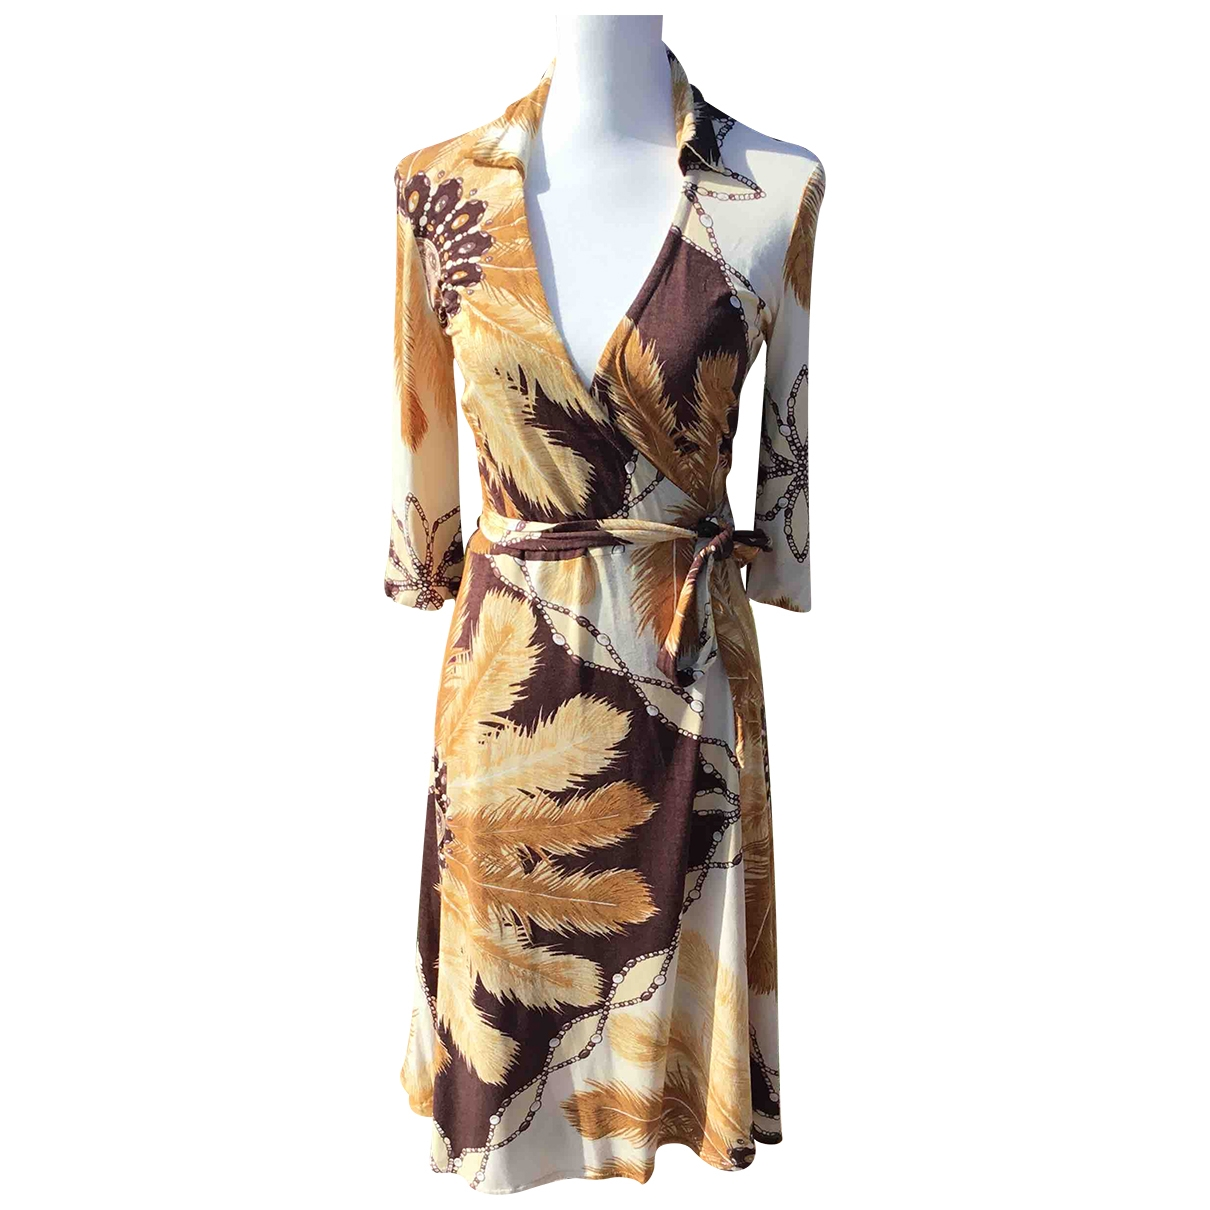 Non Signe / Unsigned \N Kleid in  Beige Synthetik